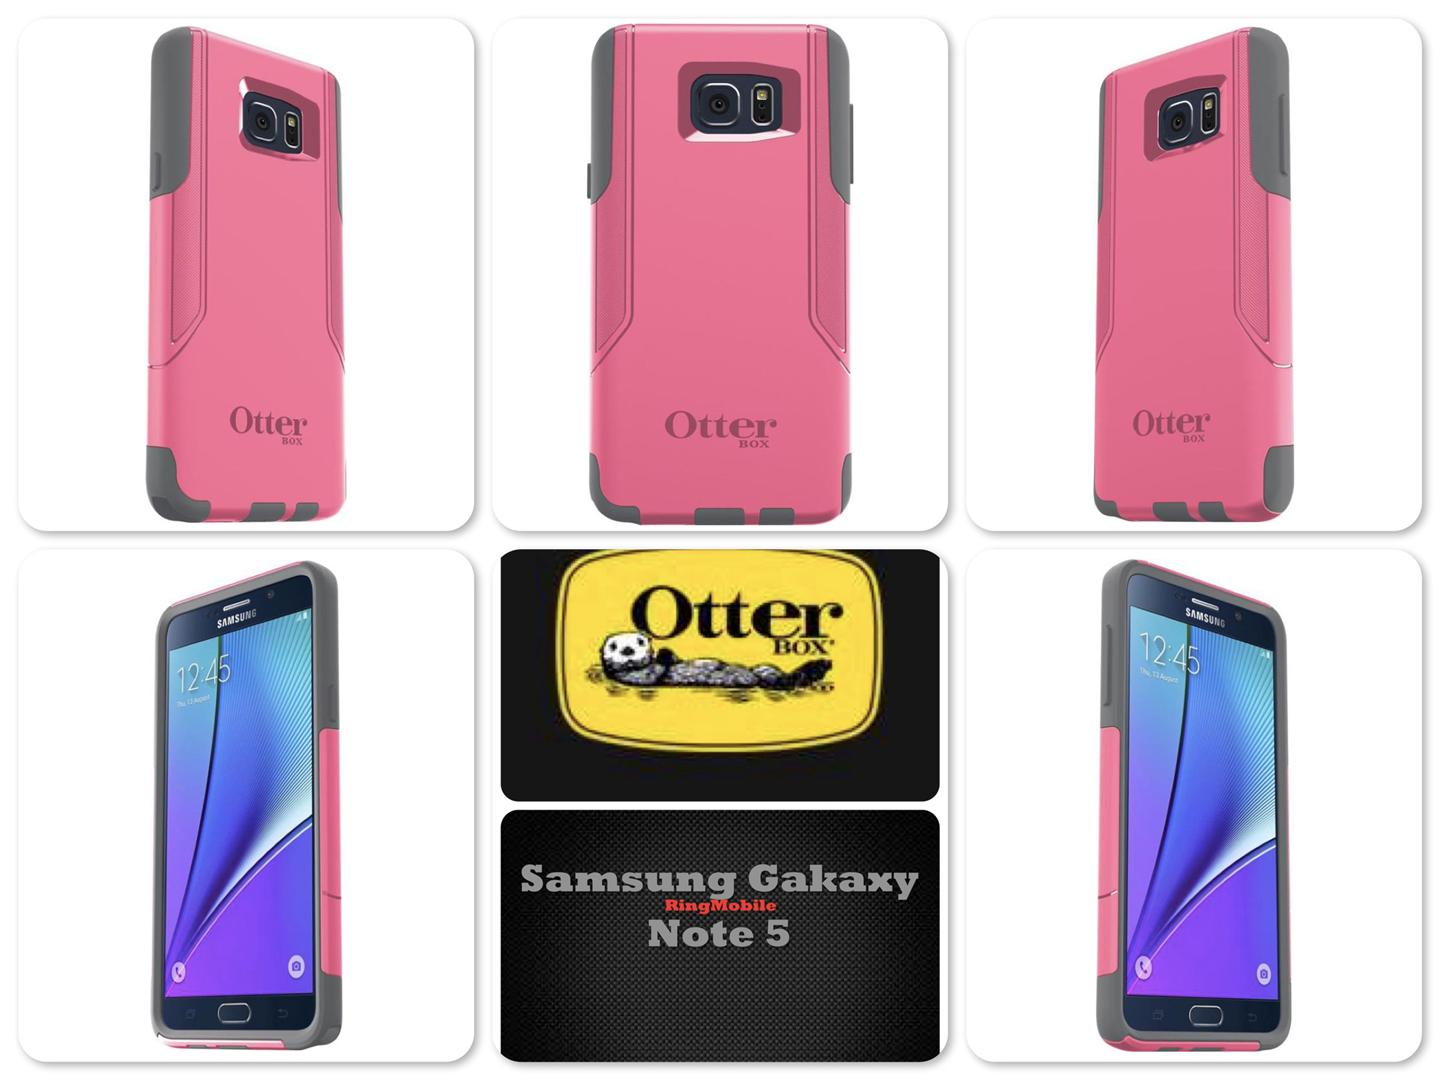 Samsung Galaxy Note 5 Otterbox Commuter Series Pink Shadow